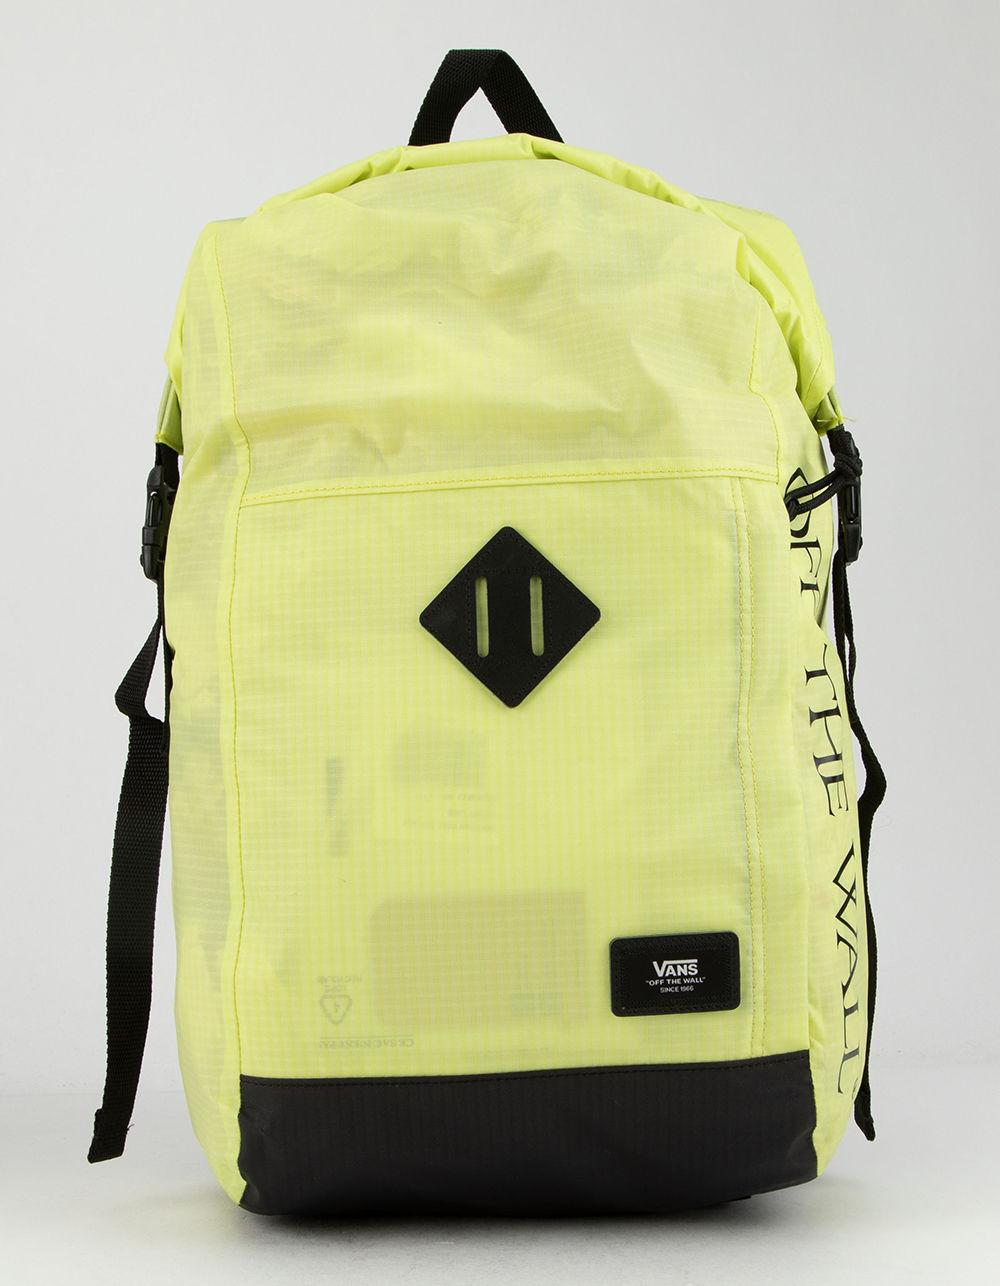 b2199e91d8 Vans - Multicolor Fend Roll Top Sunny Lime Backpack for Men - Lyst. View  fullscreen